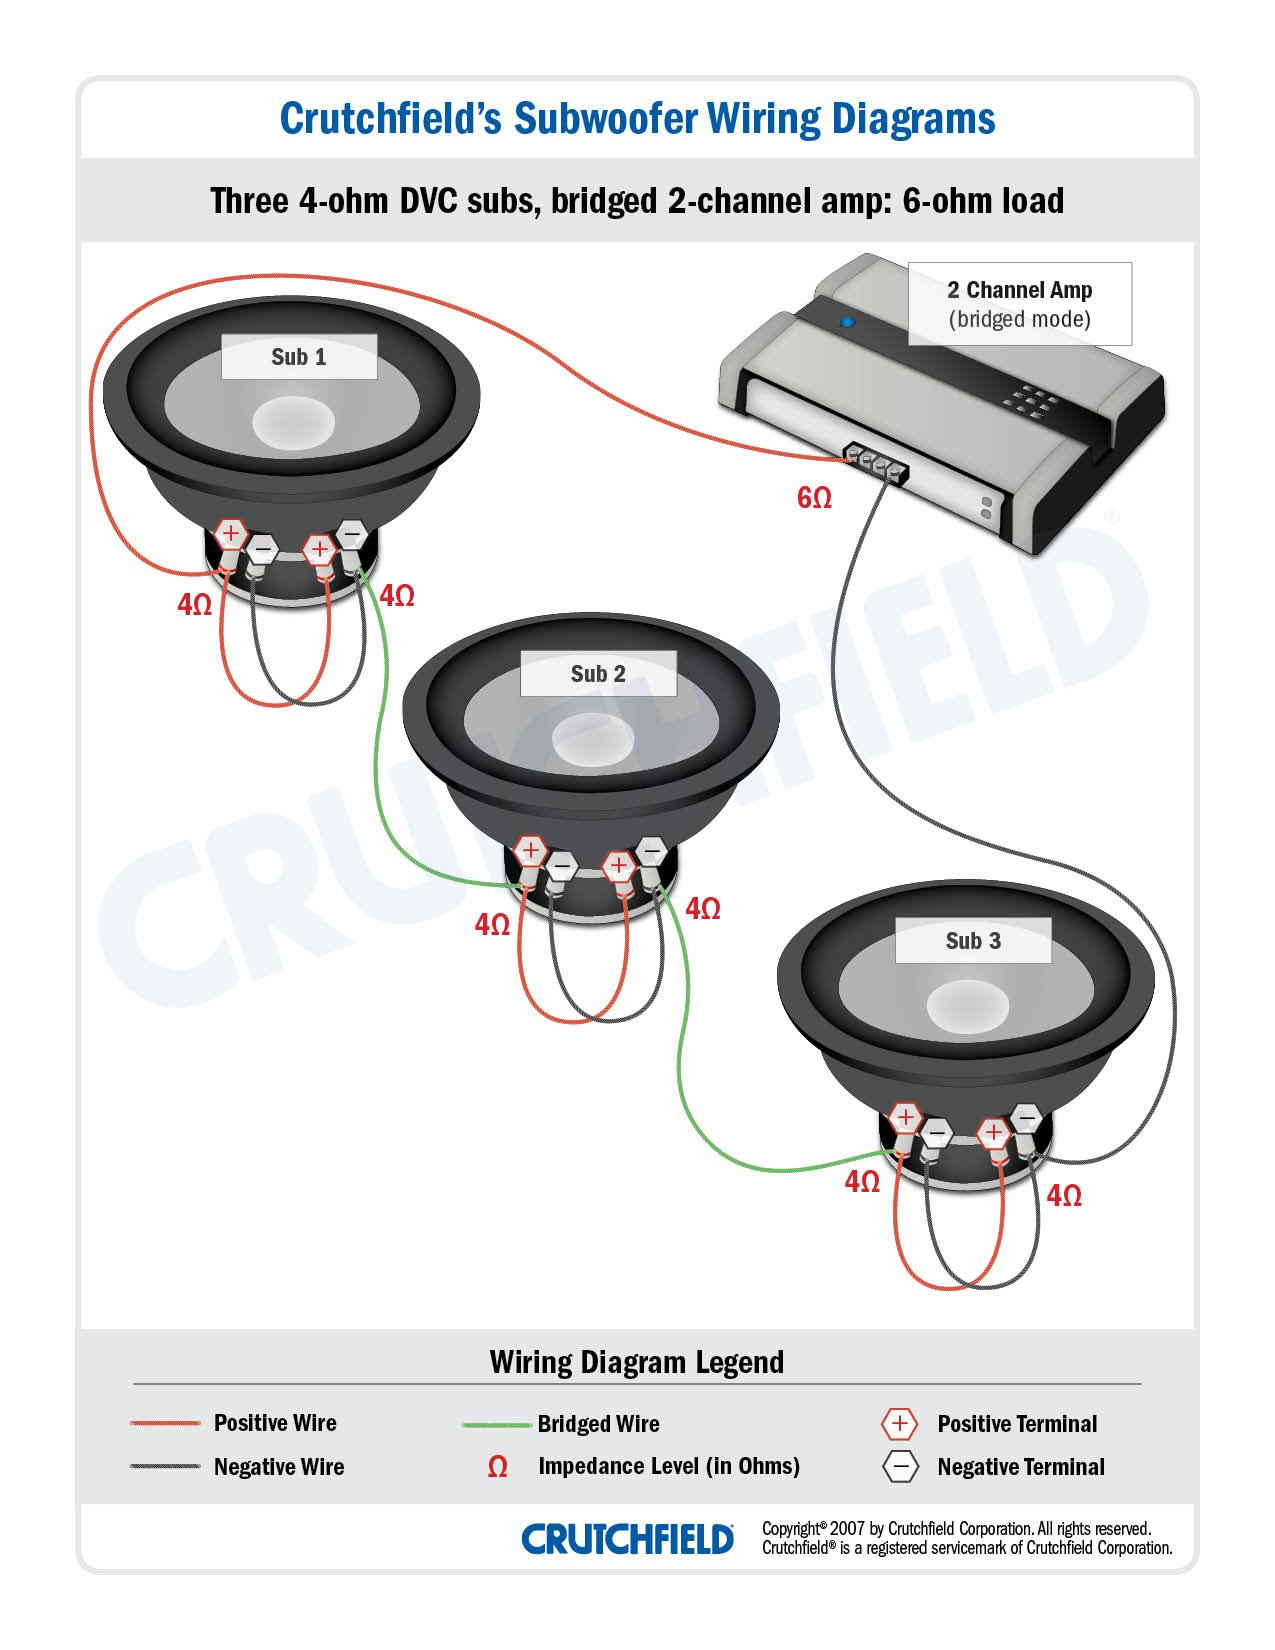 3 DVC 4 ohm 2 ch subwoofer wiring diagrams Basic Electrical Wiring Diagrams at bakdesigns.co